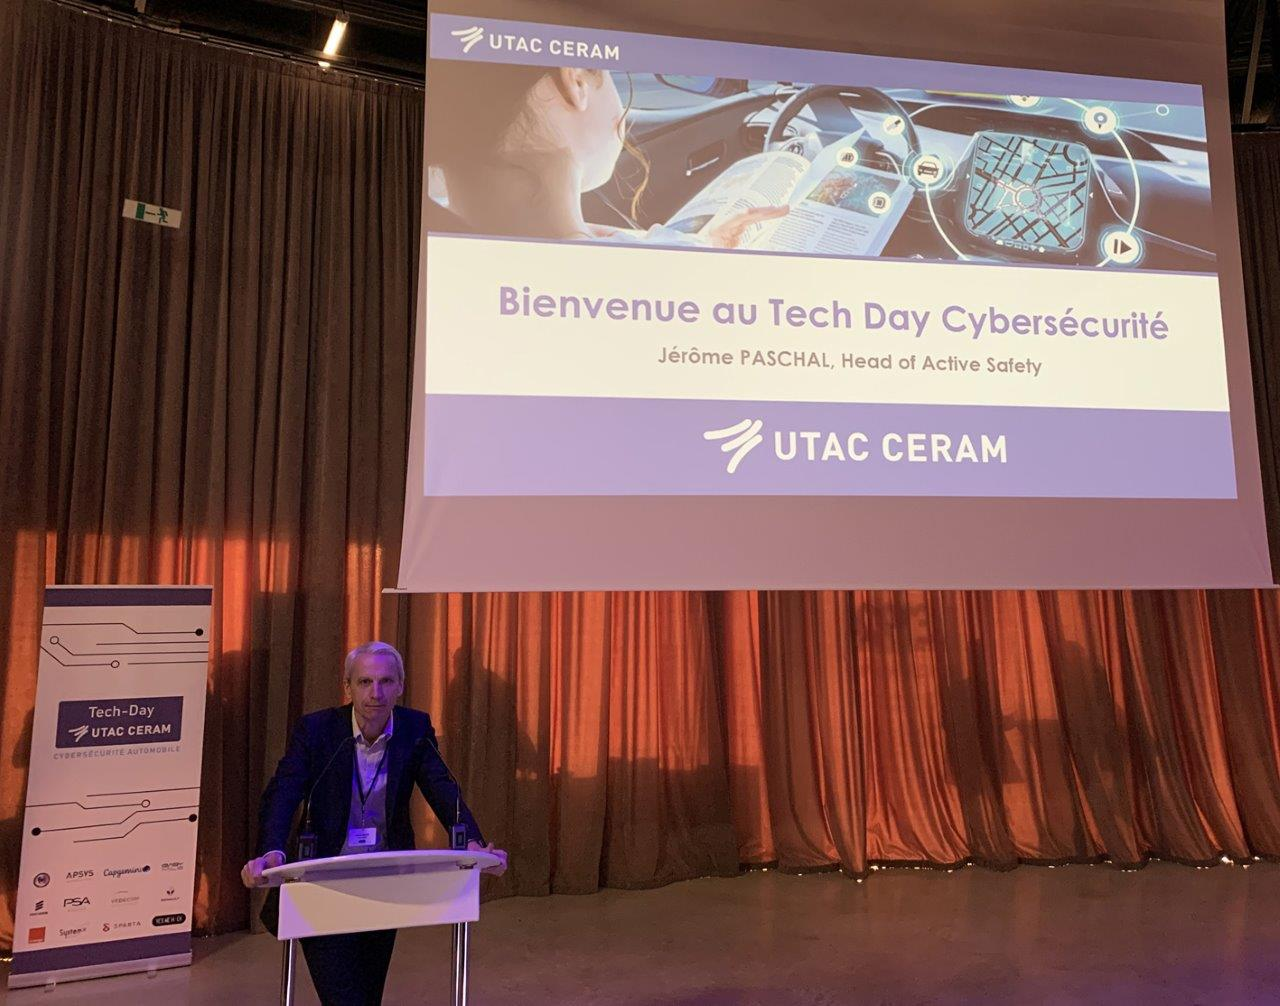 FIRST TECH-DAY AUTOMOTIVE CYBERSECURITY UTAC CERAM